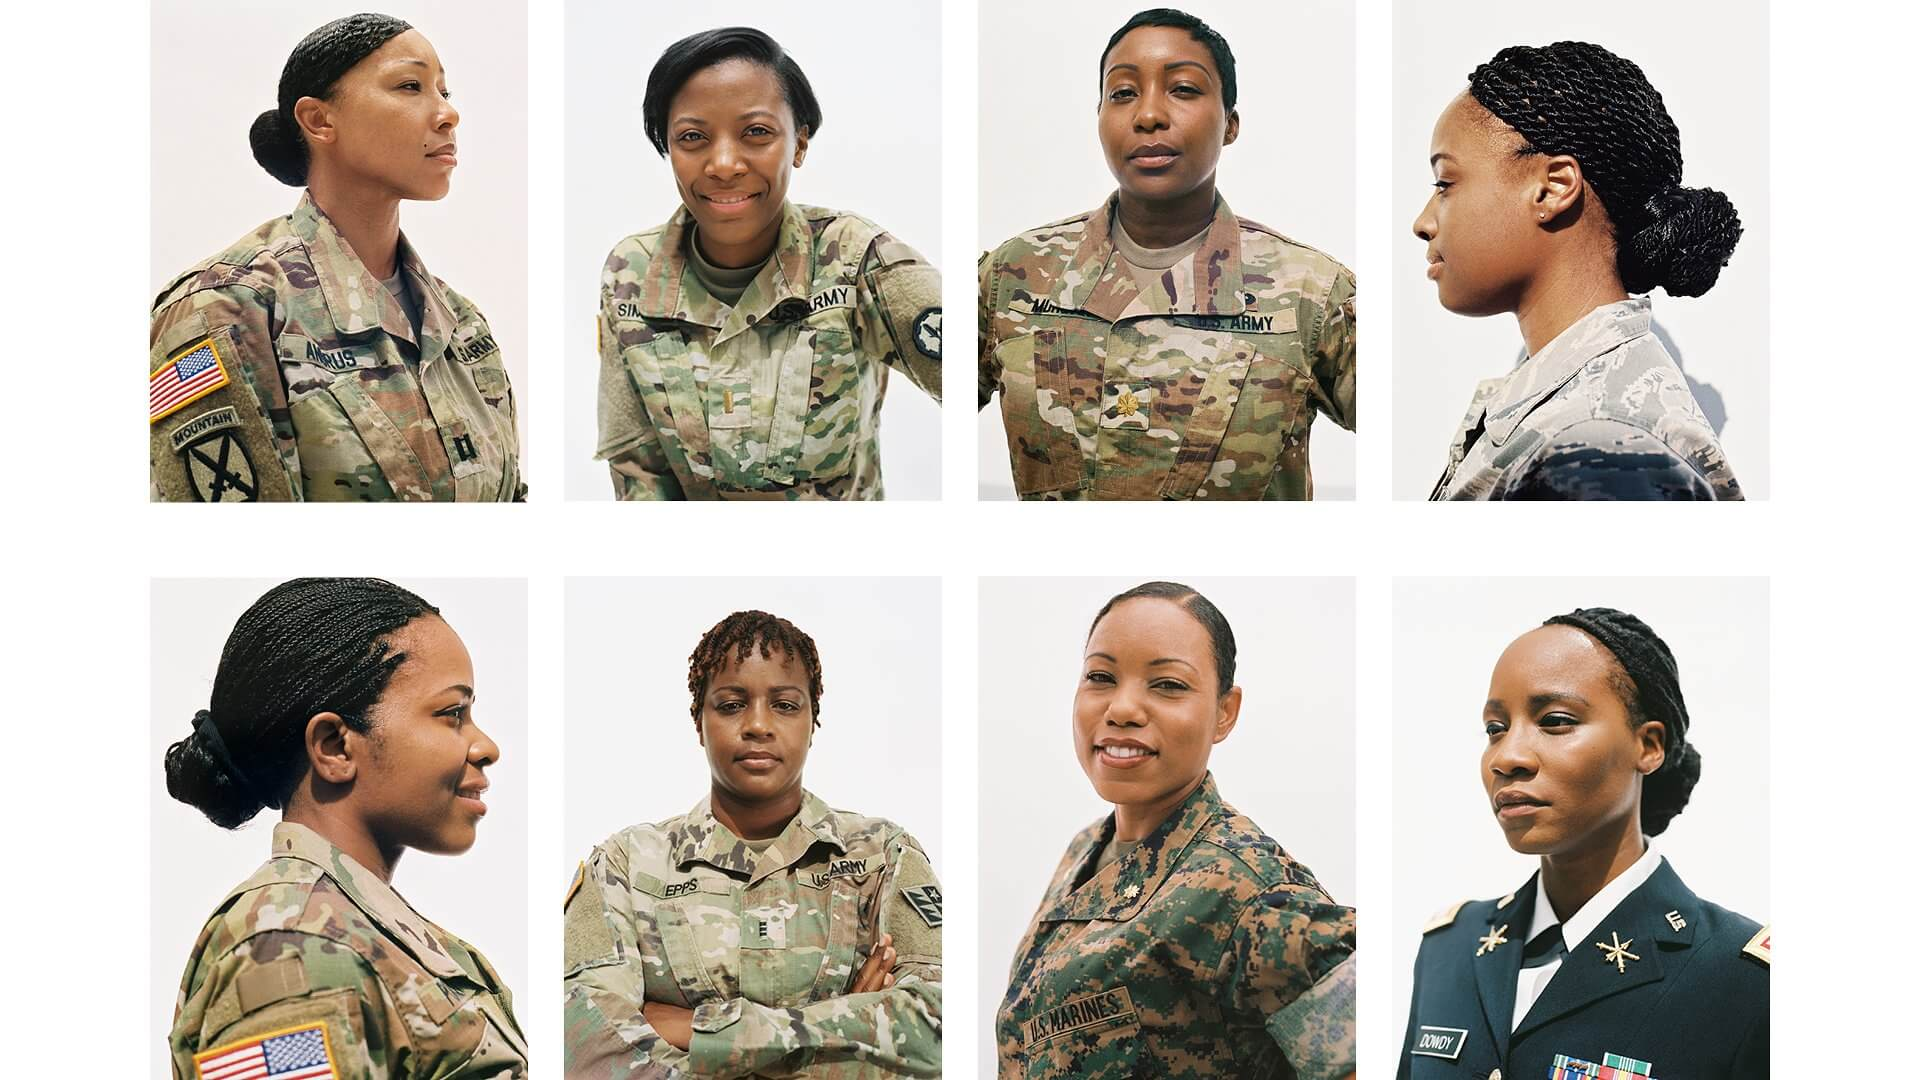 Army Haircut Regulations For Females